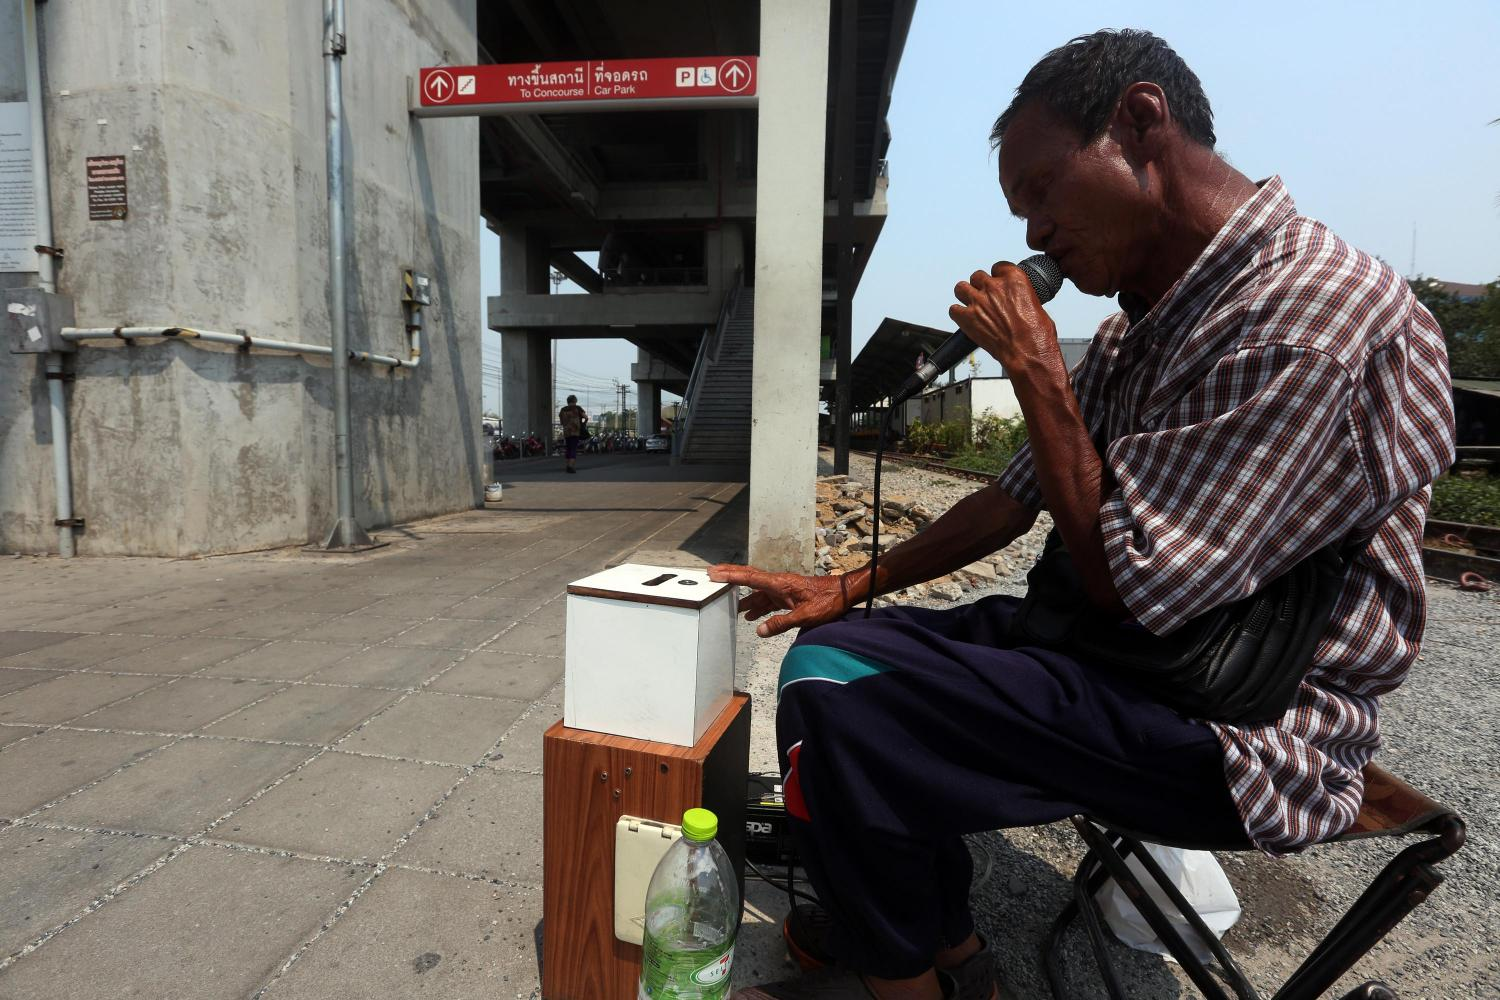 A busker sings a song on a street underneath an elevated train station in Bangkok. Ageing buskers are among those at the lowest rung of society who do not receive social welfare protection from the state. (POST TODAY photo)